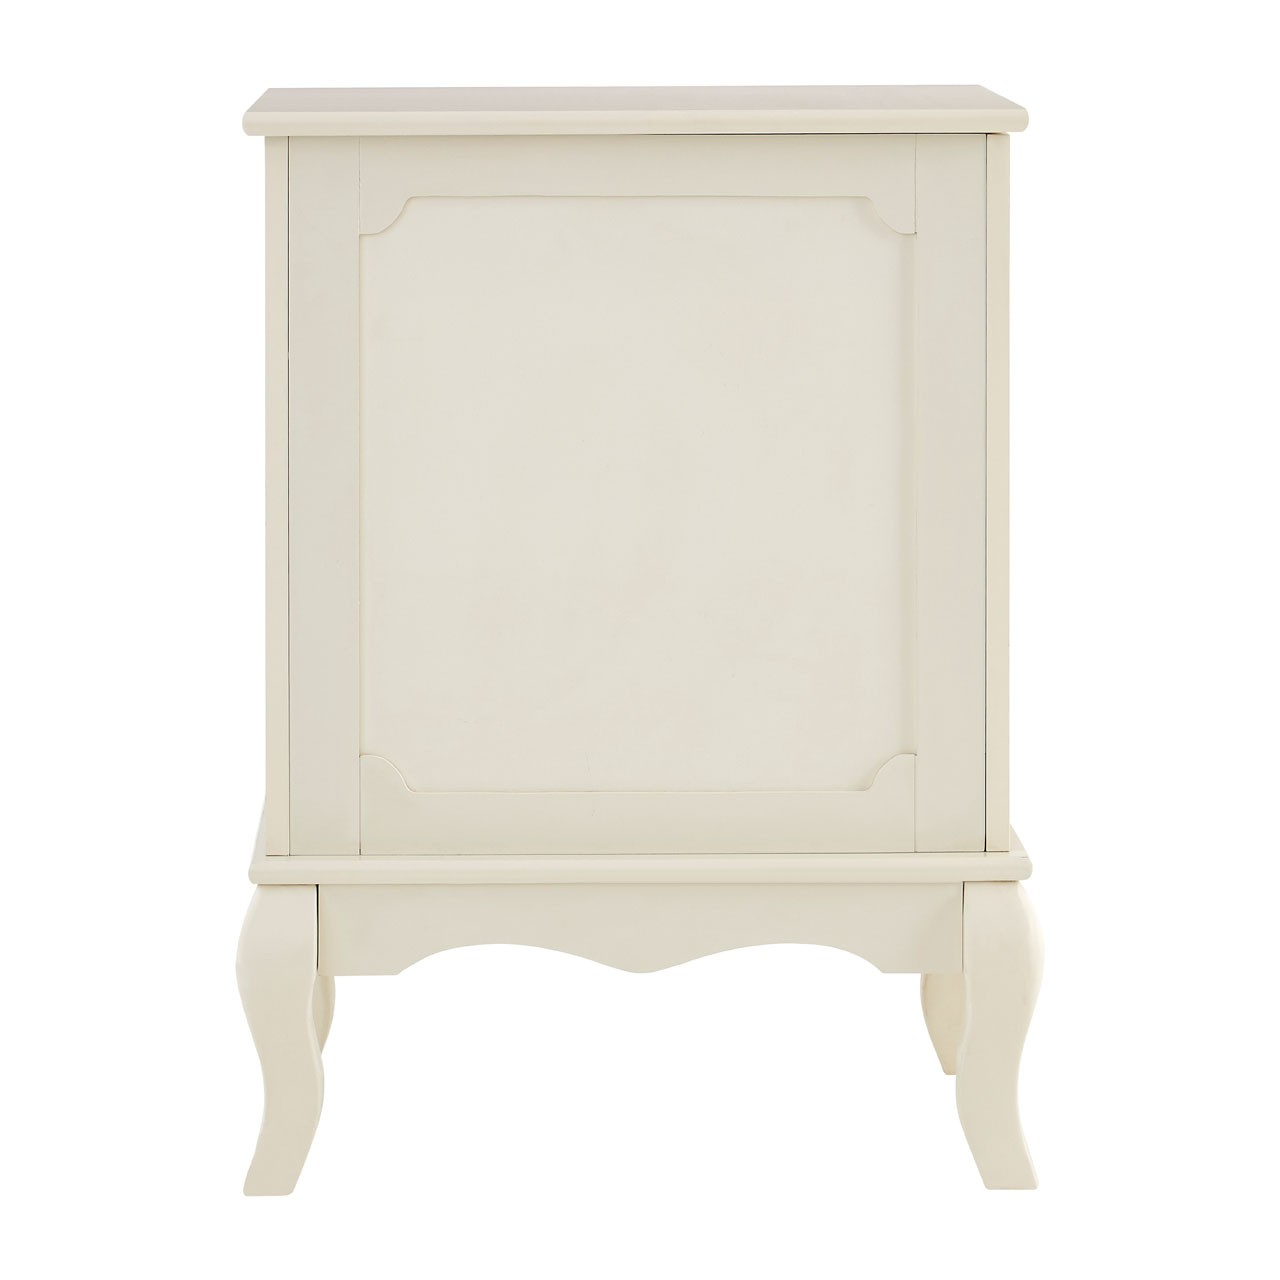 Marcella Laundry Cabinet, Ivory